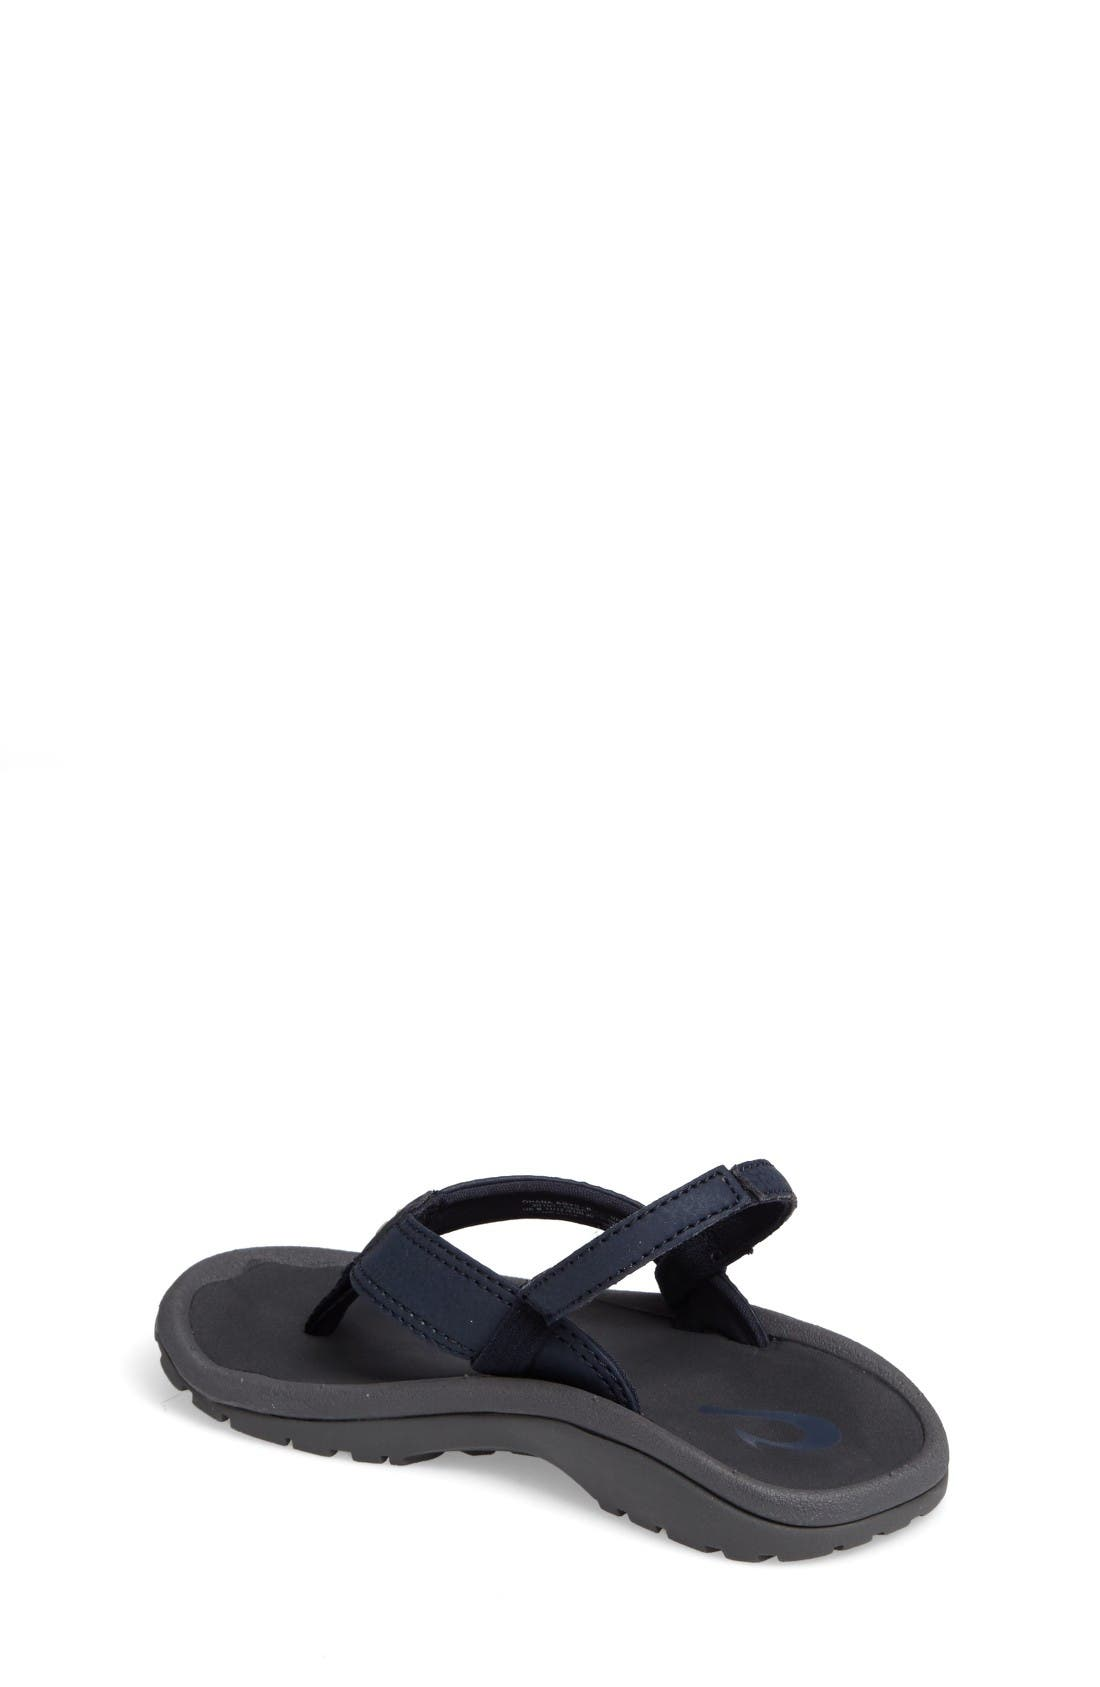 'Ohana' Sandal,                             Alternate thumbnail 2, color,                             Trench Blue/ Dark Shadow